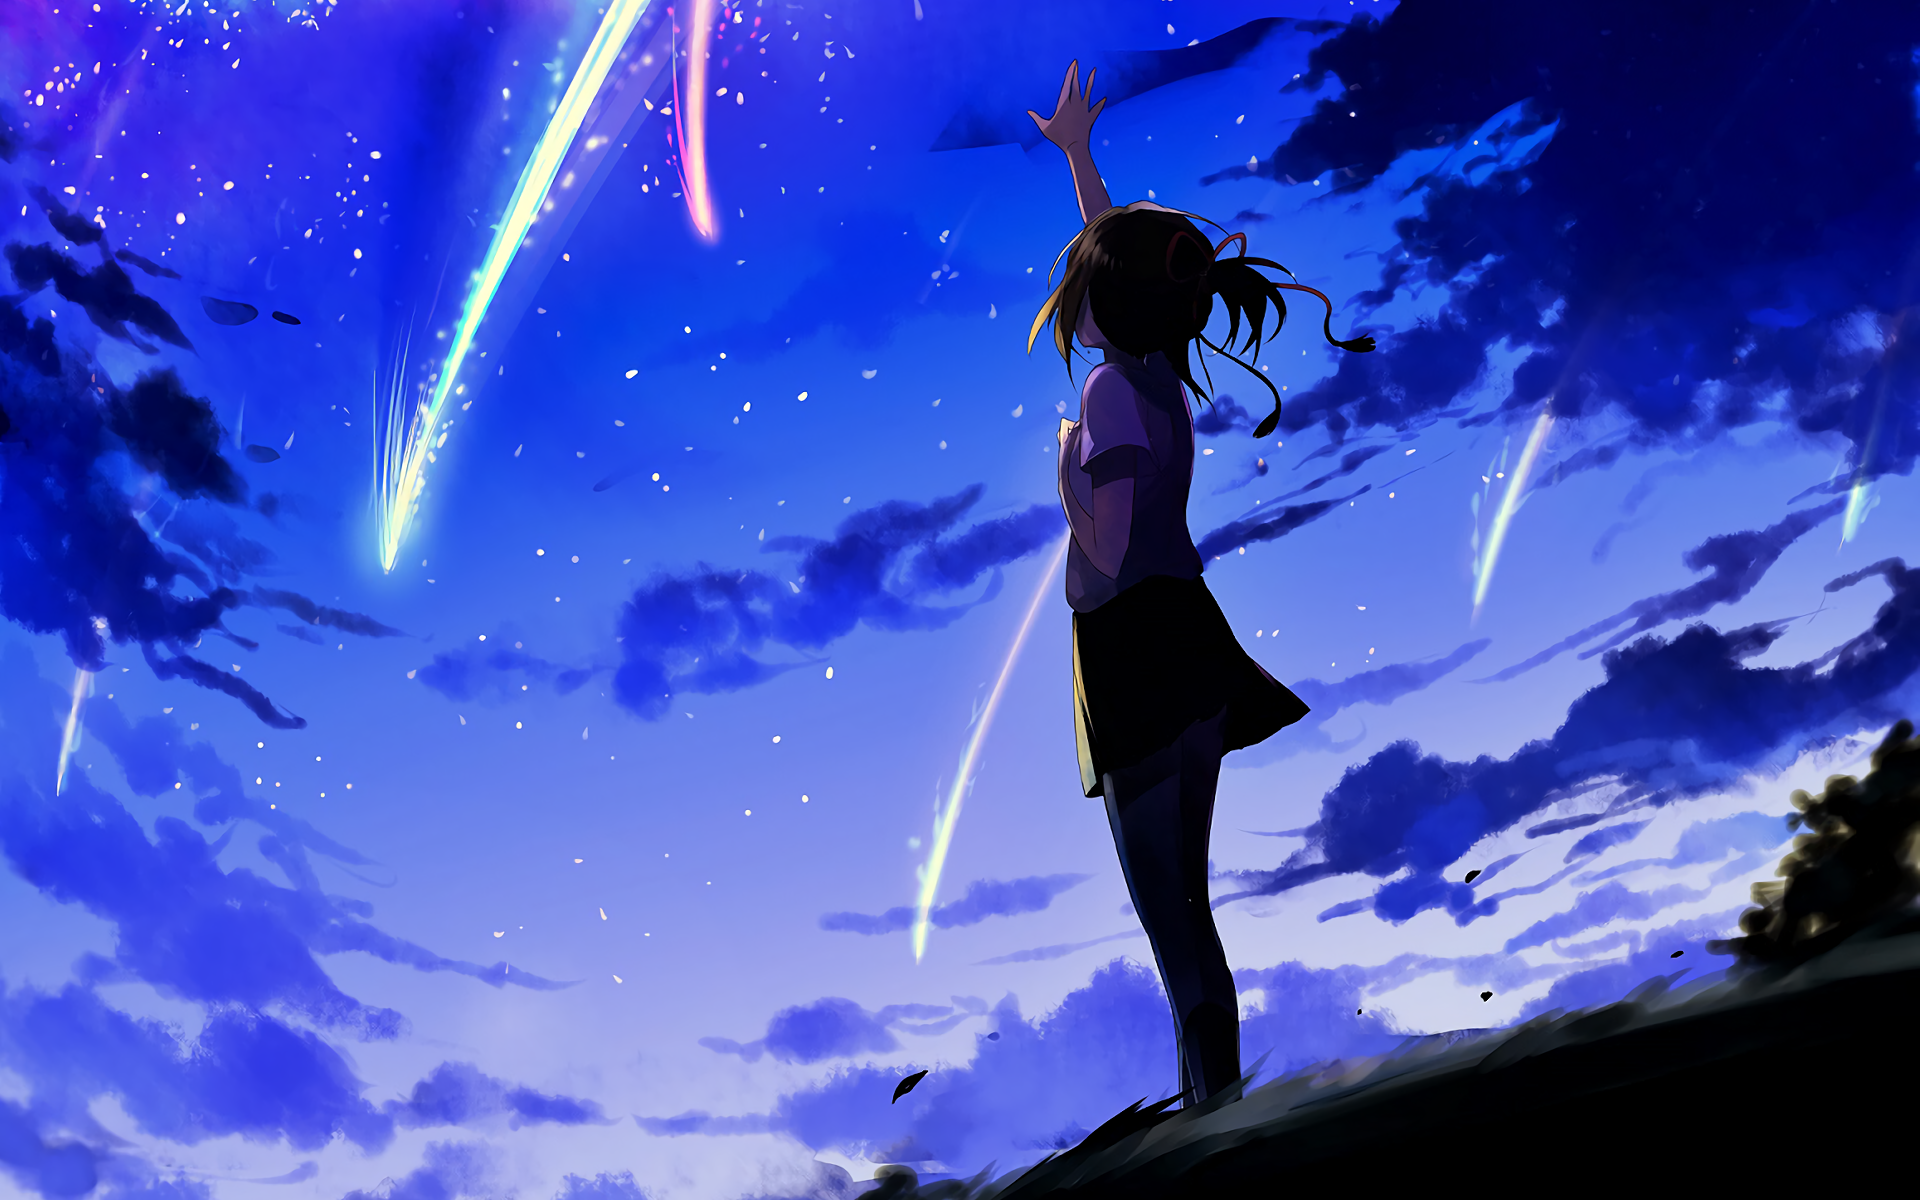 Anime Wallpapers  Kimi no Nawa HD 4K Download For Mobile iPhone & PC